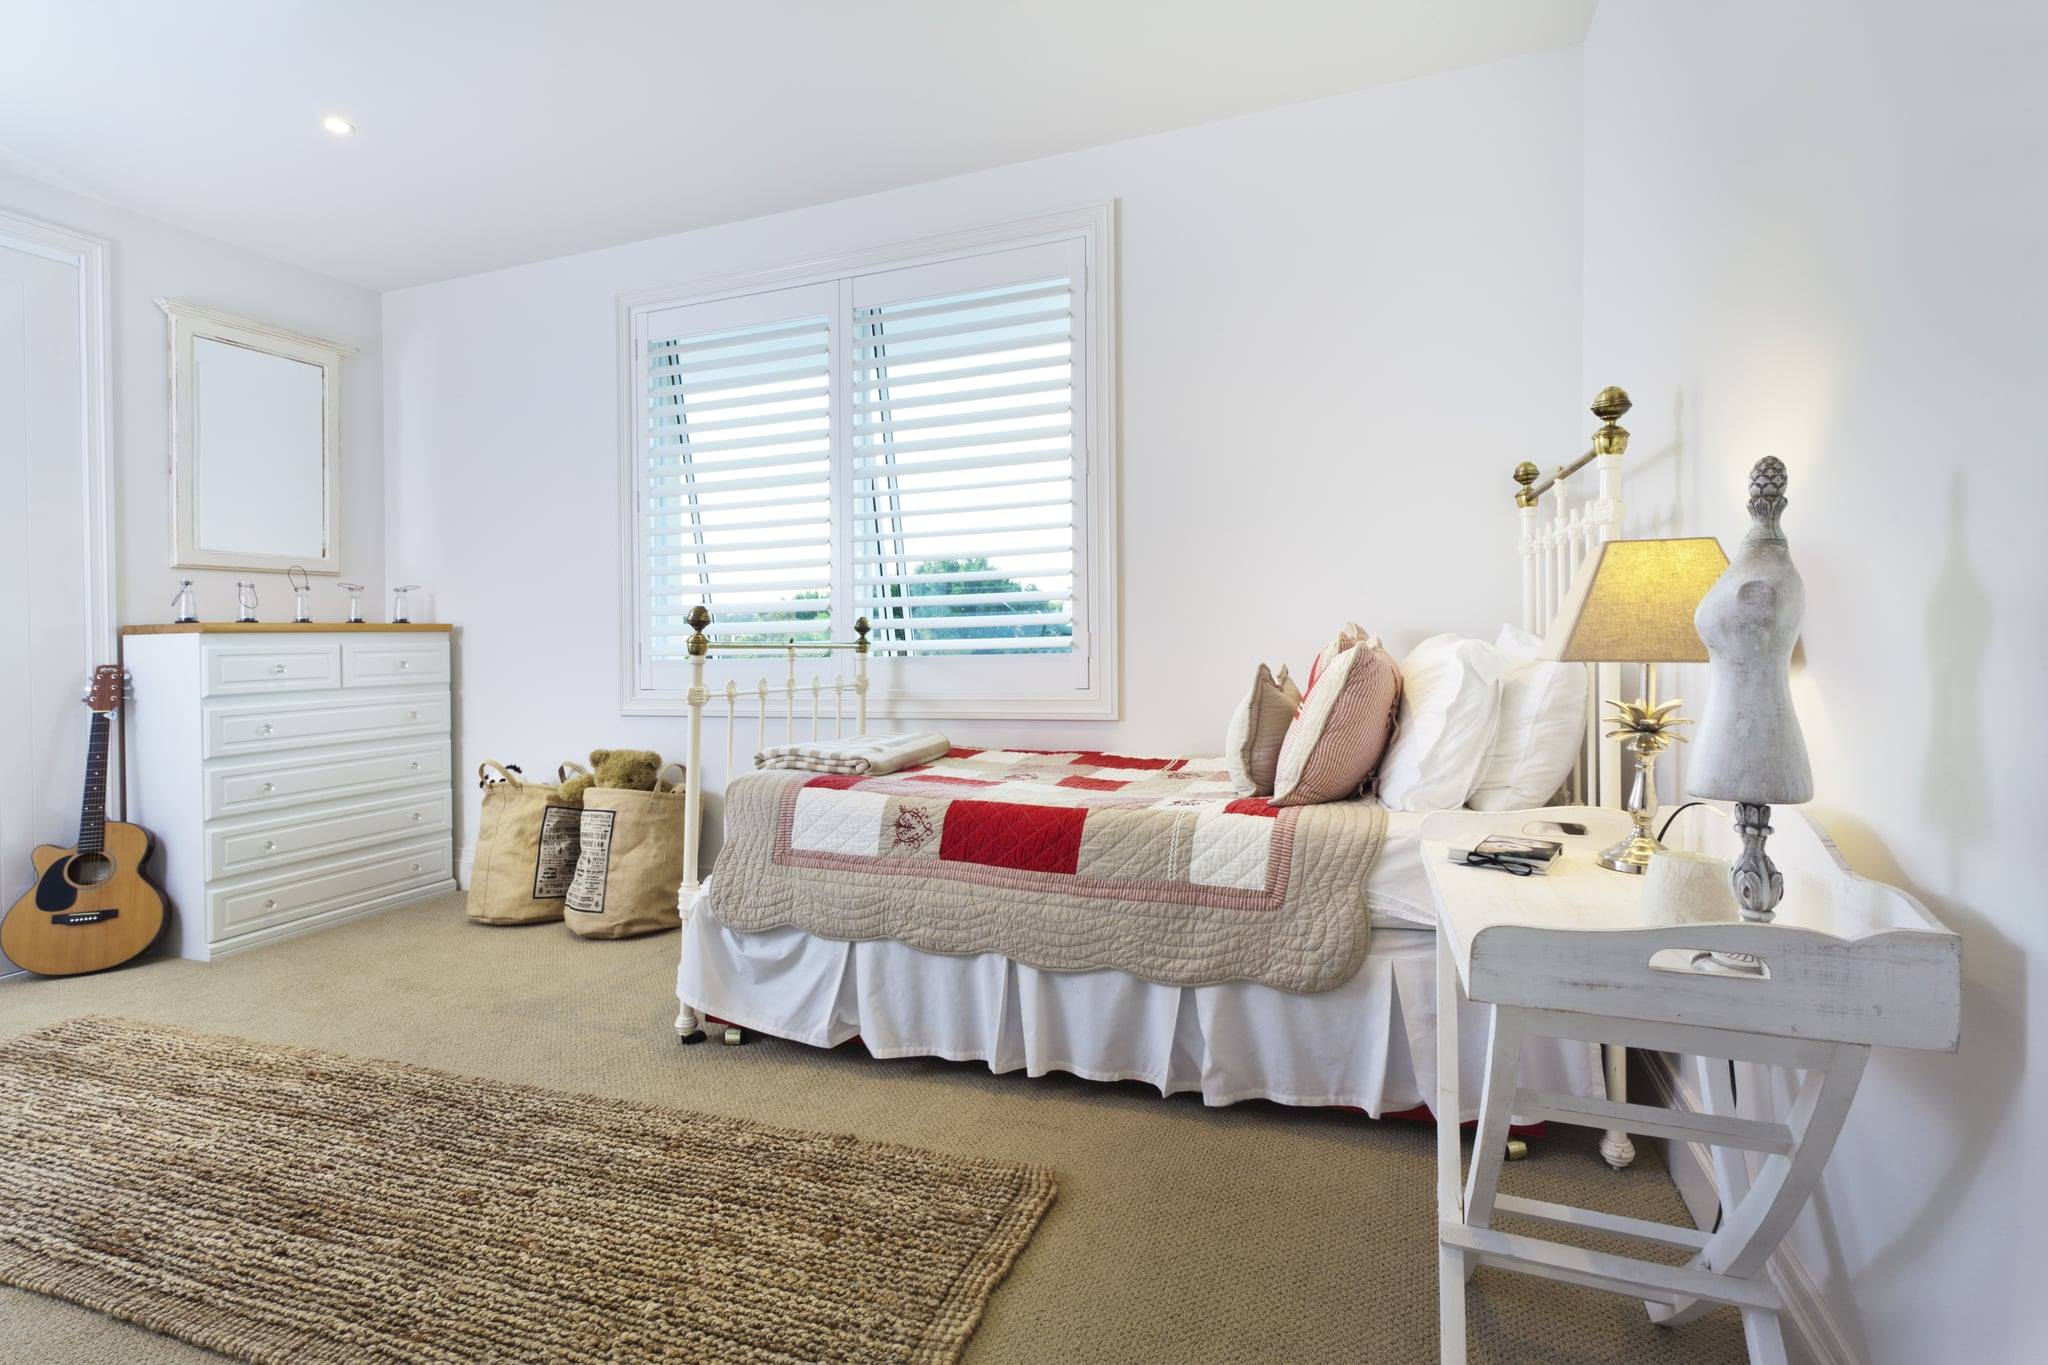 The 6 Easiest Ways to Clean Your Bedroom Thoroughly and Efficiently